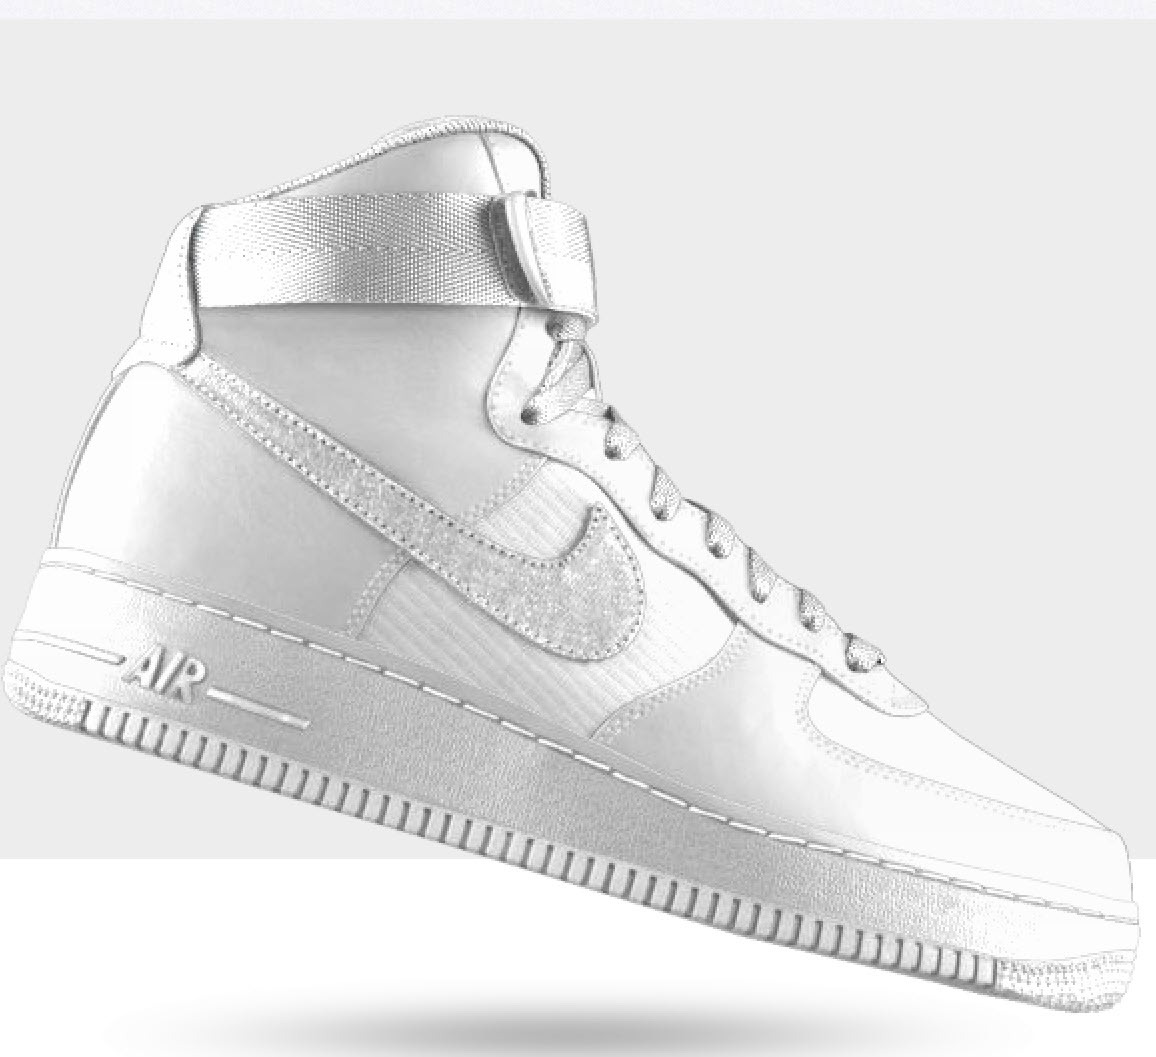 info for ee888 473cf Vita egendesign av customfoo.se Vita Air force one från Nike.